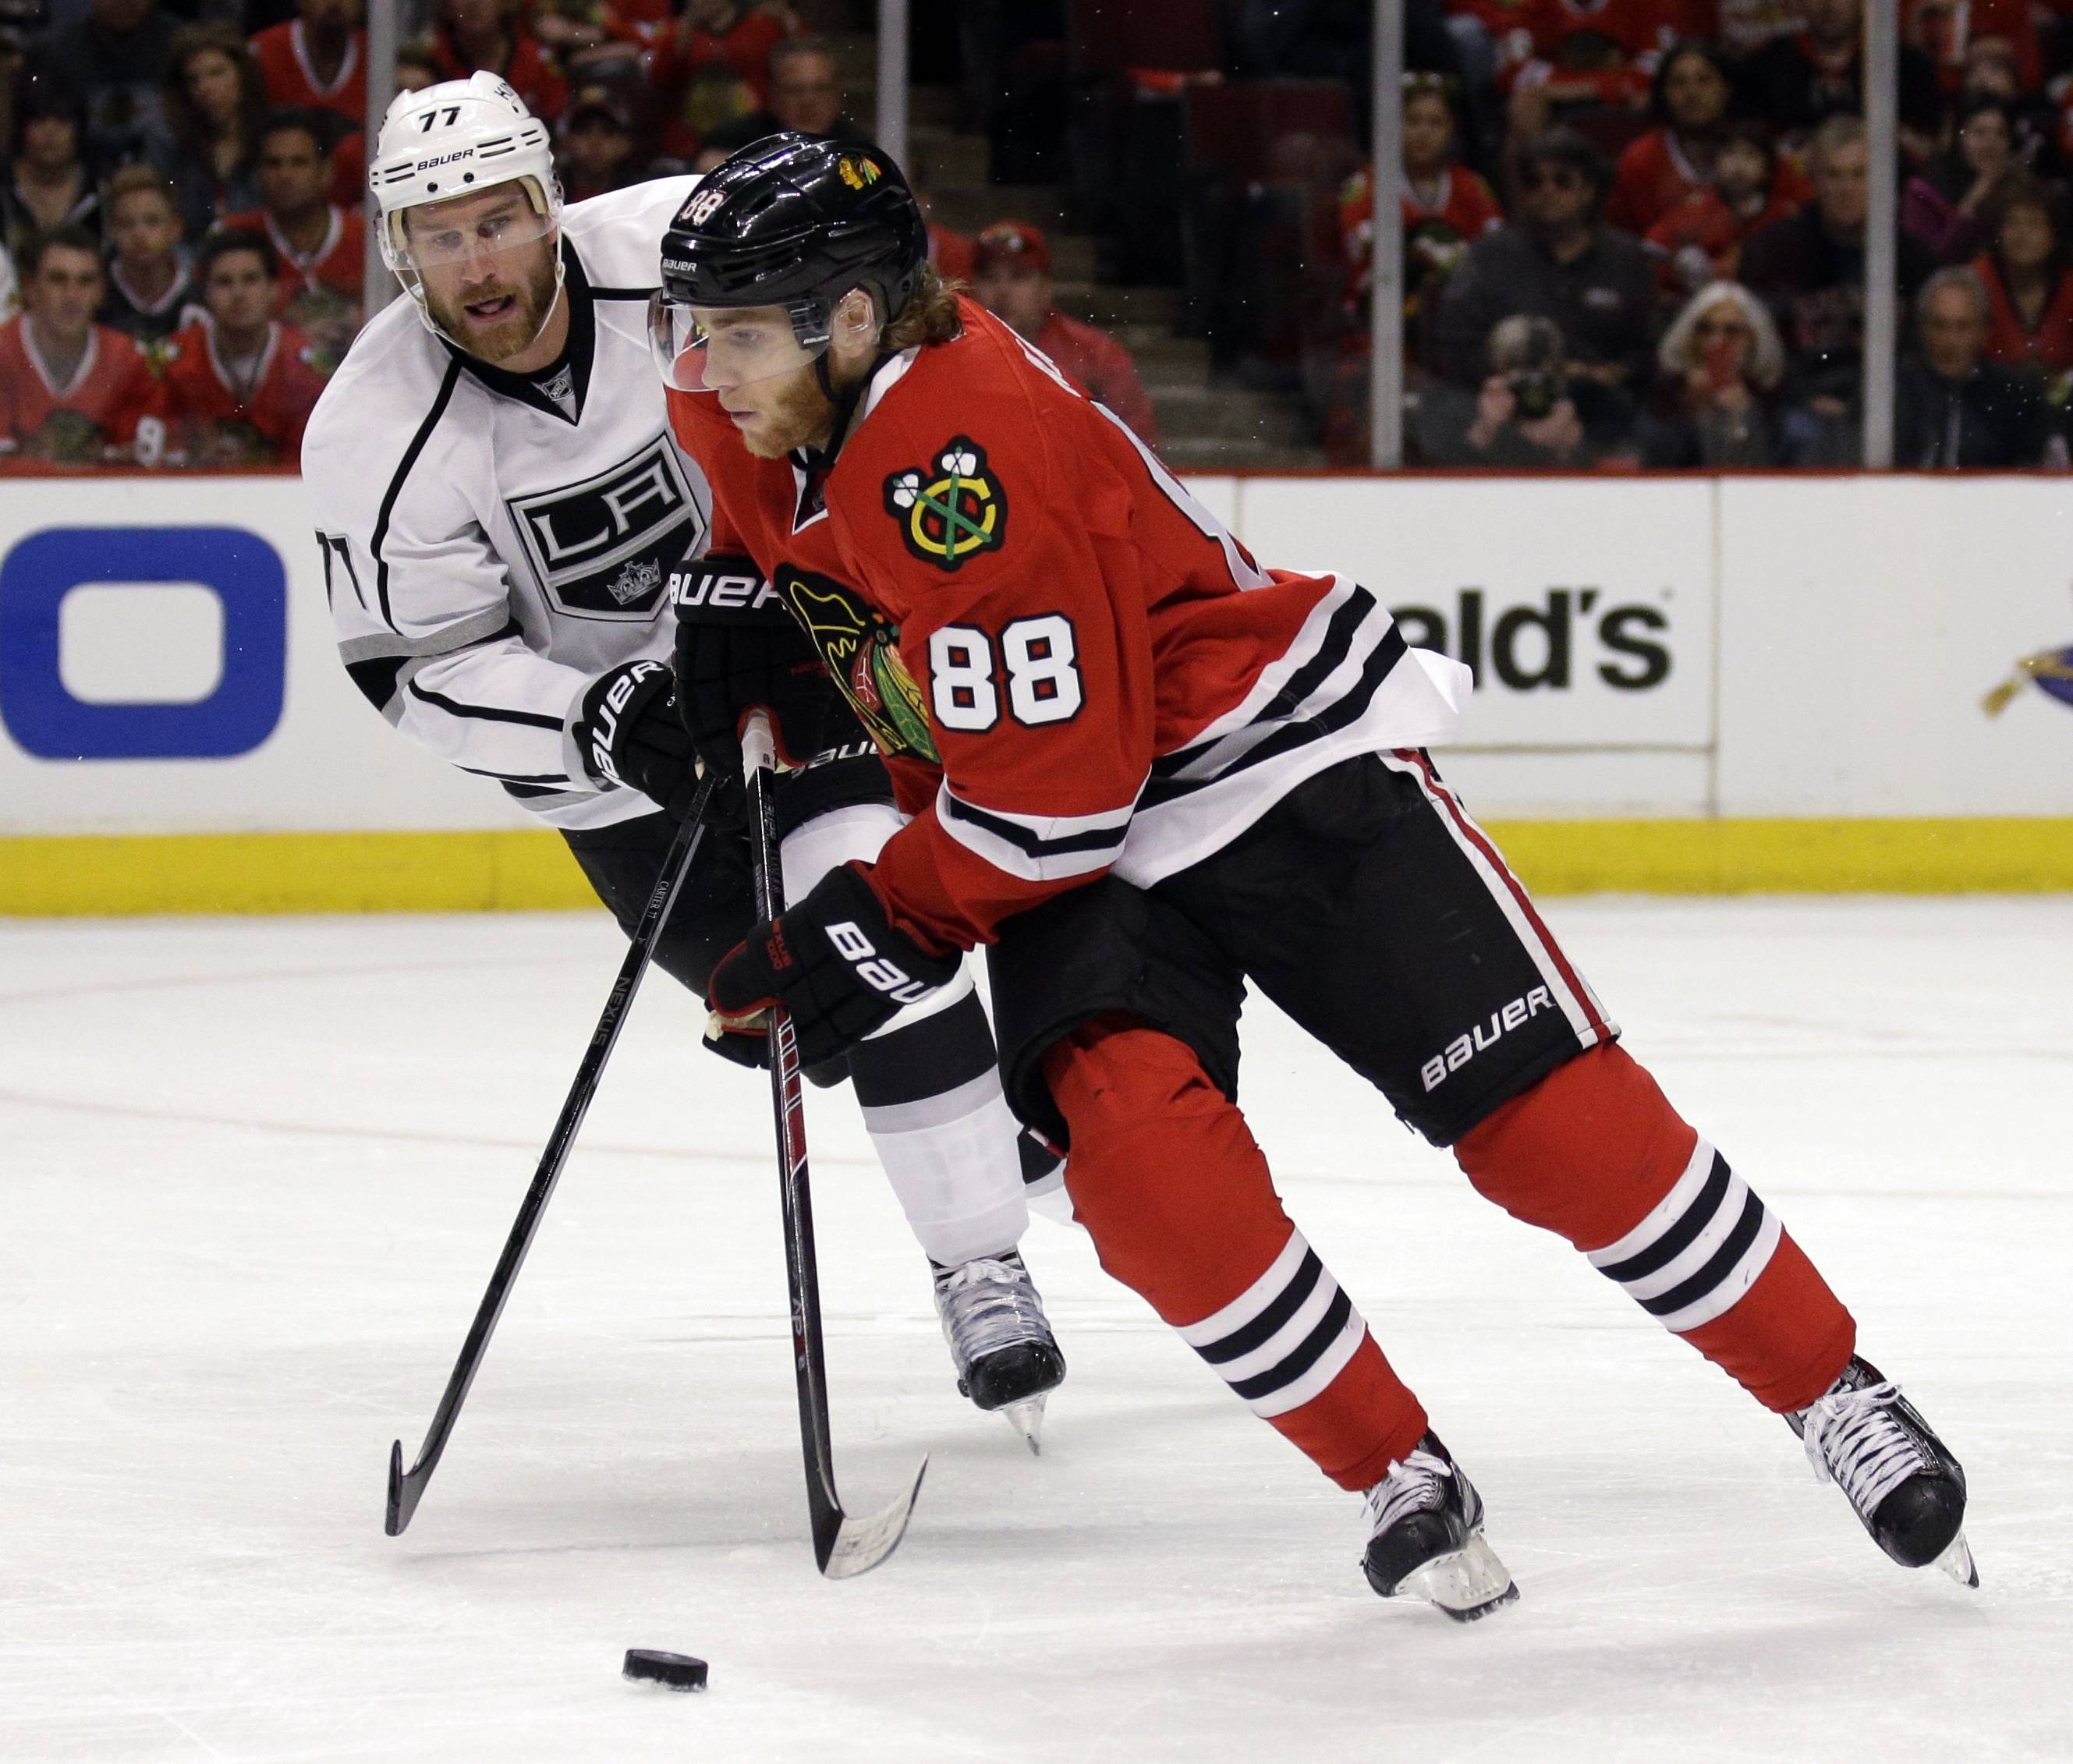 Chicago Blackhawks' Patrick Kane (88), right, controls the puck against Los Angeles Kings' Jeff Carter (77) during the first period in Game 1 of the Western Conference finals in the NHL hockey Stanley Cup playoffs in Chicago on Sunday, May 18, 2014.